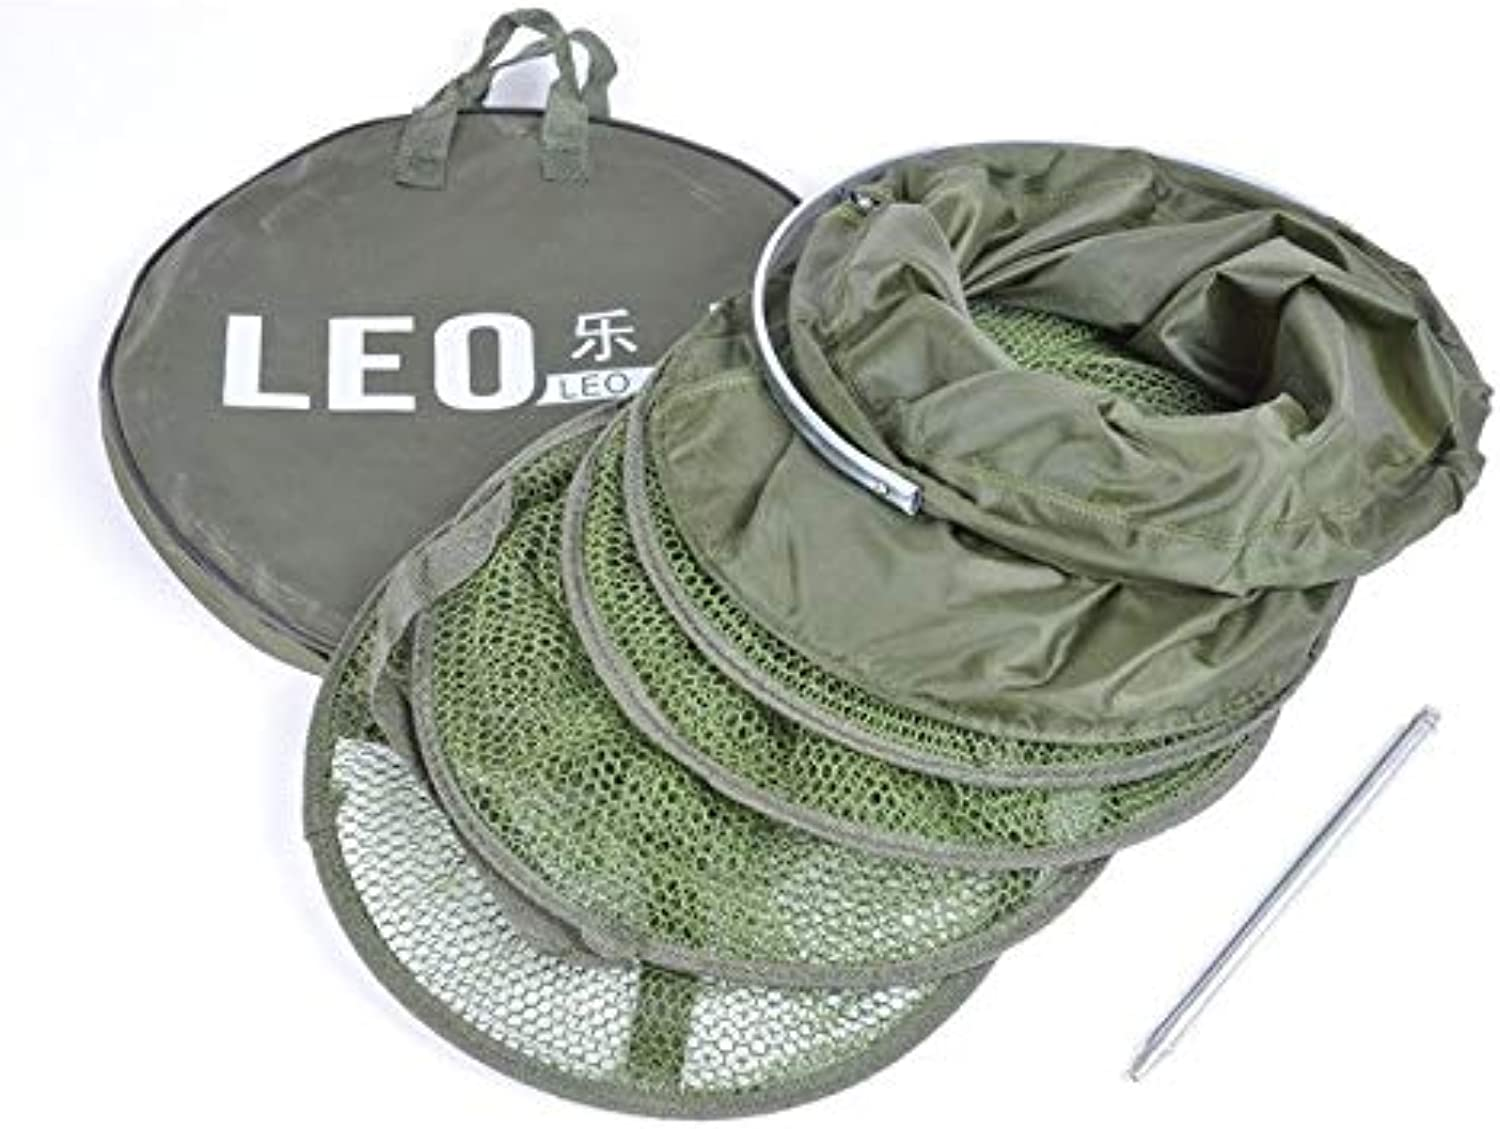 34CM  1.5M Fishing Net Cage Creel 5 Layers Collapsible Easy to Use Fish Net Cage Equipment Fishing Tackle Tools   White